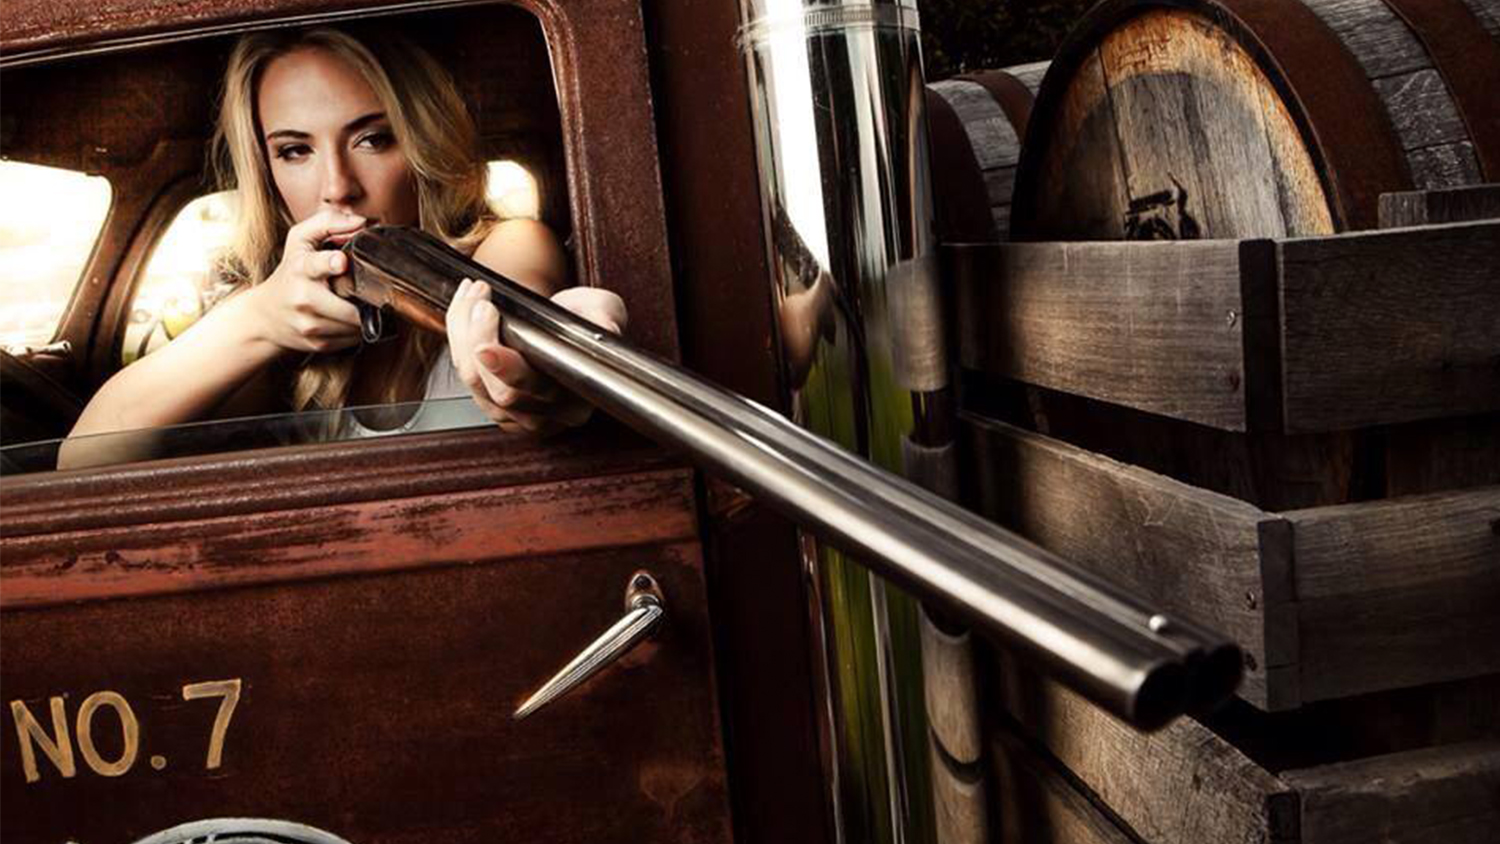 Amanda McCarthy: Singer, Songwriter, and Second Amendment Advocate